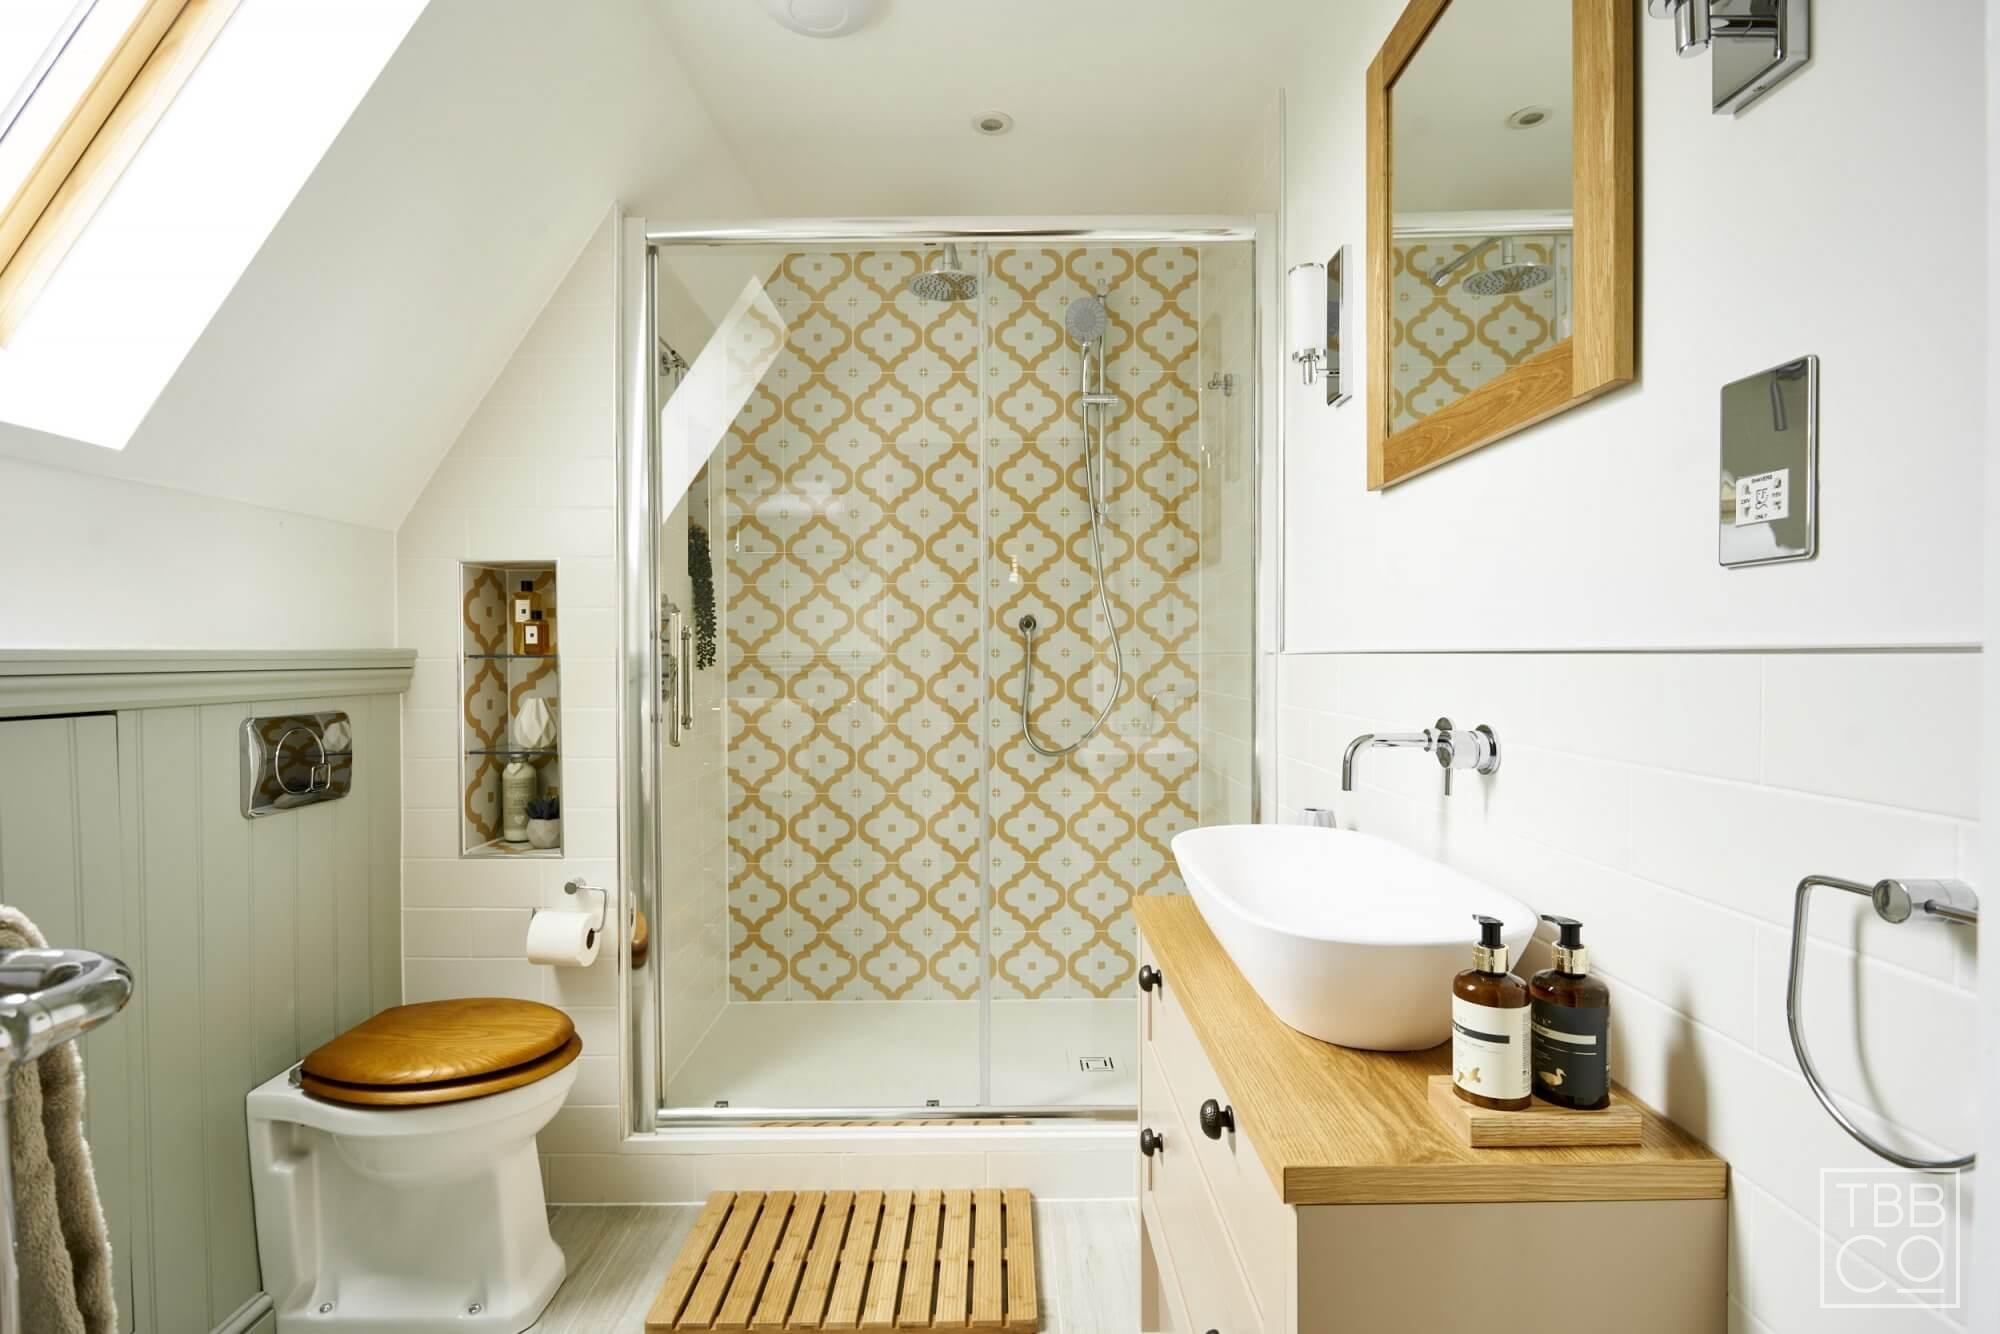 Luxury Bathroom Design The Brighton Bathroom Company